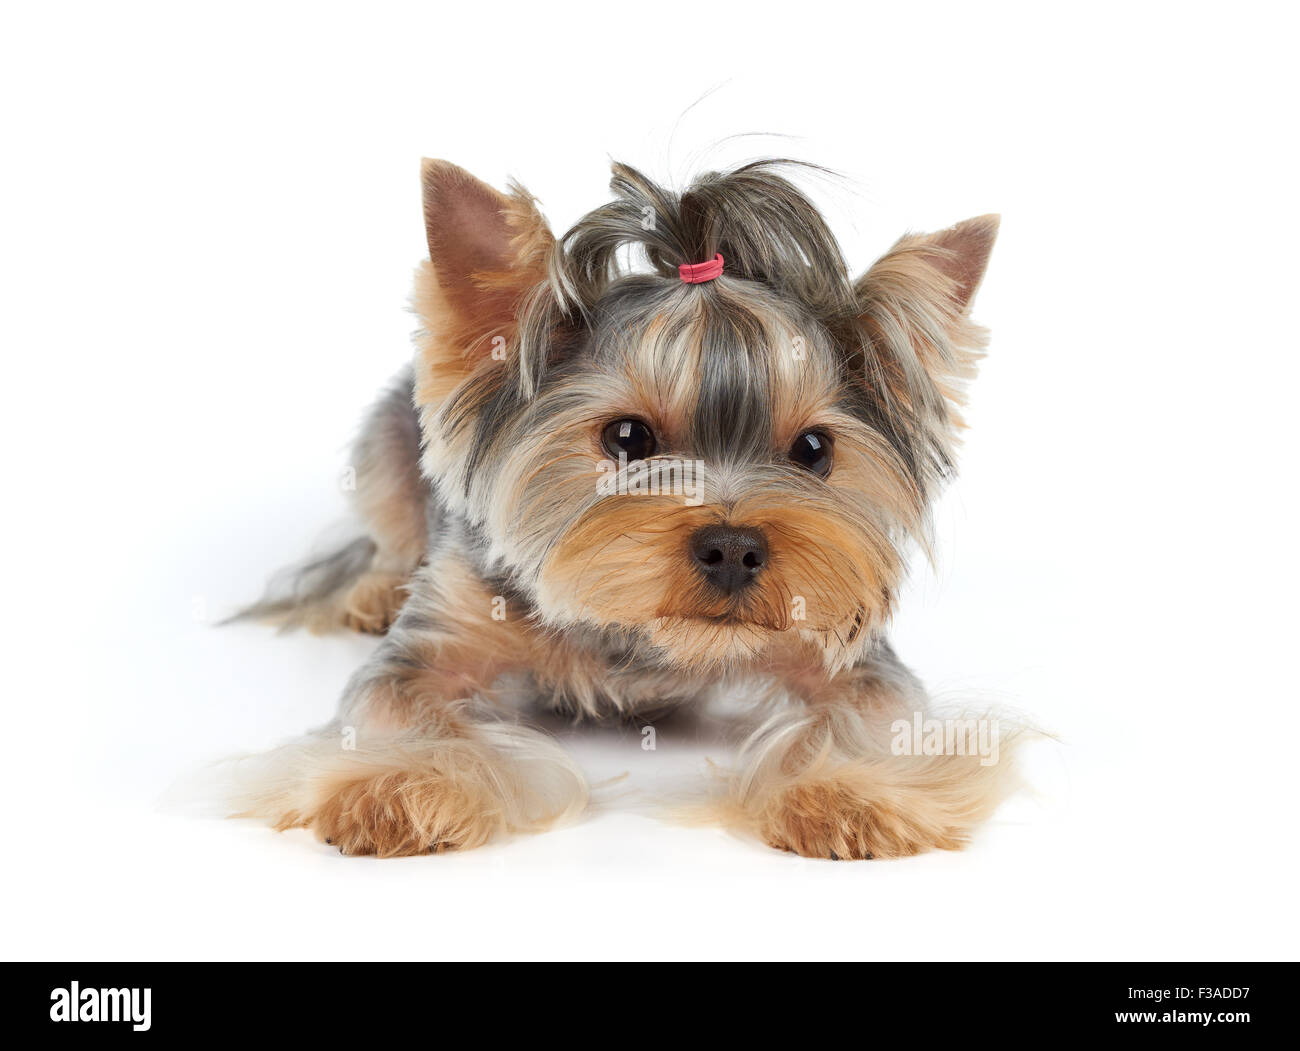 haircut yorkshire terrier lies on white background stock